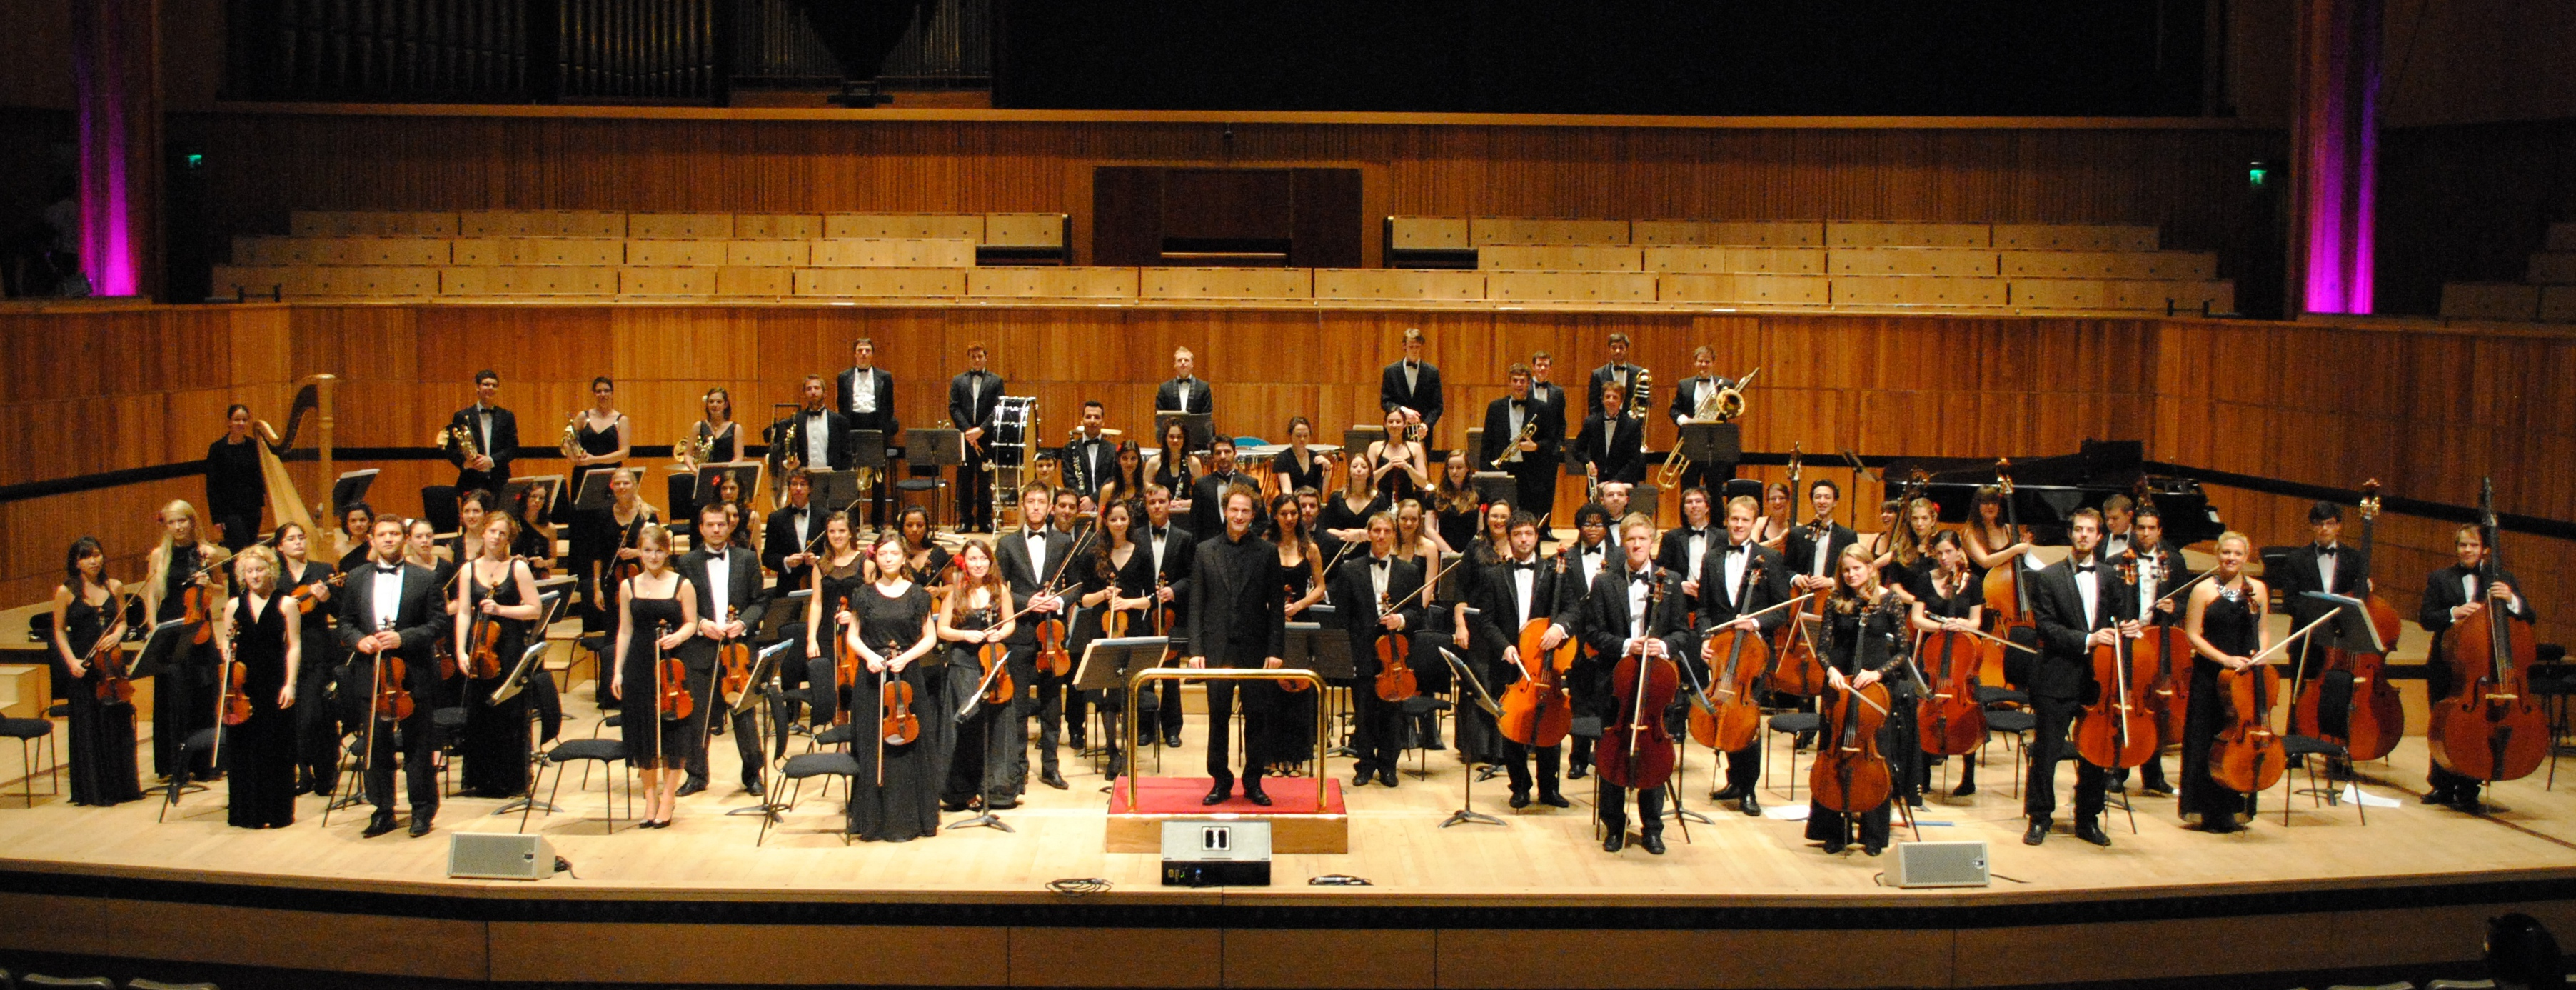 Evening Orchestral Concert - Orion Orchestra